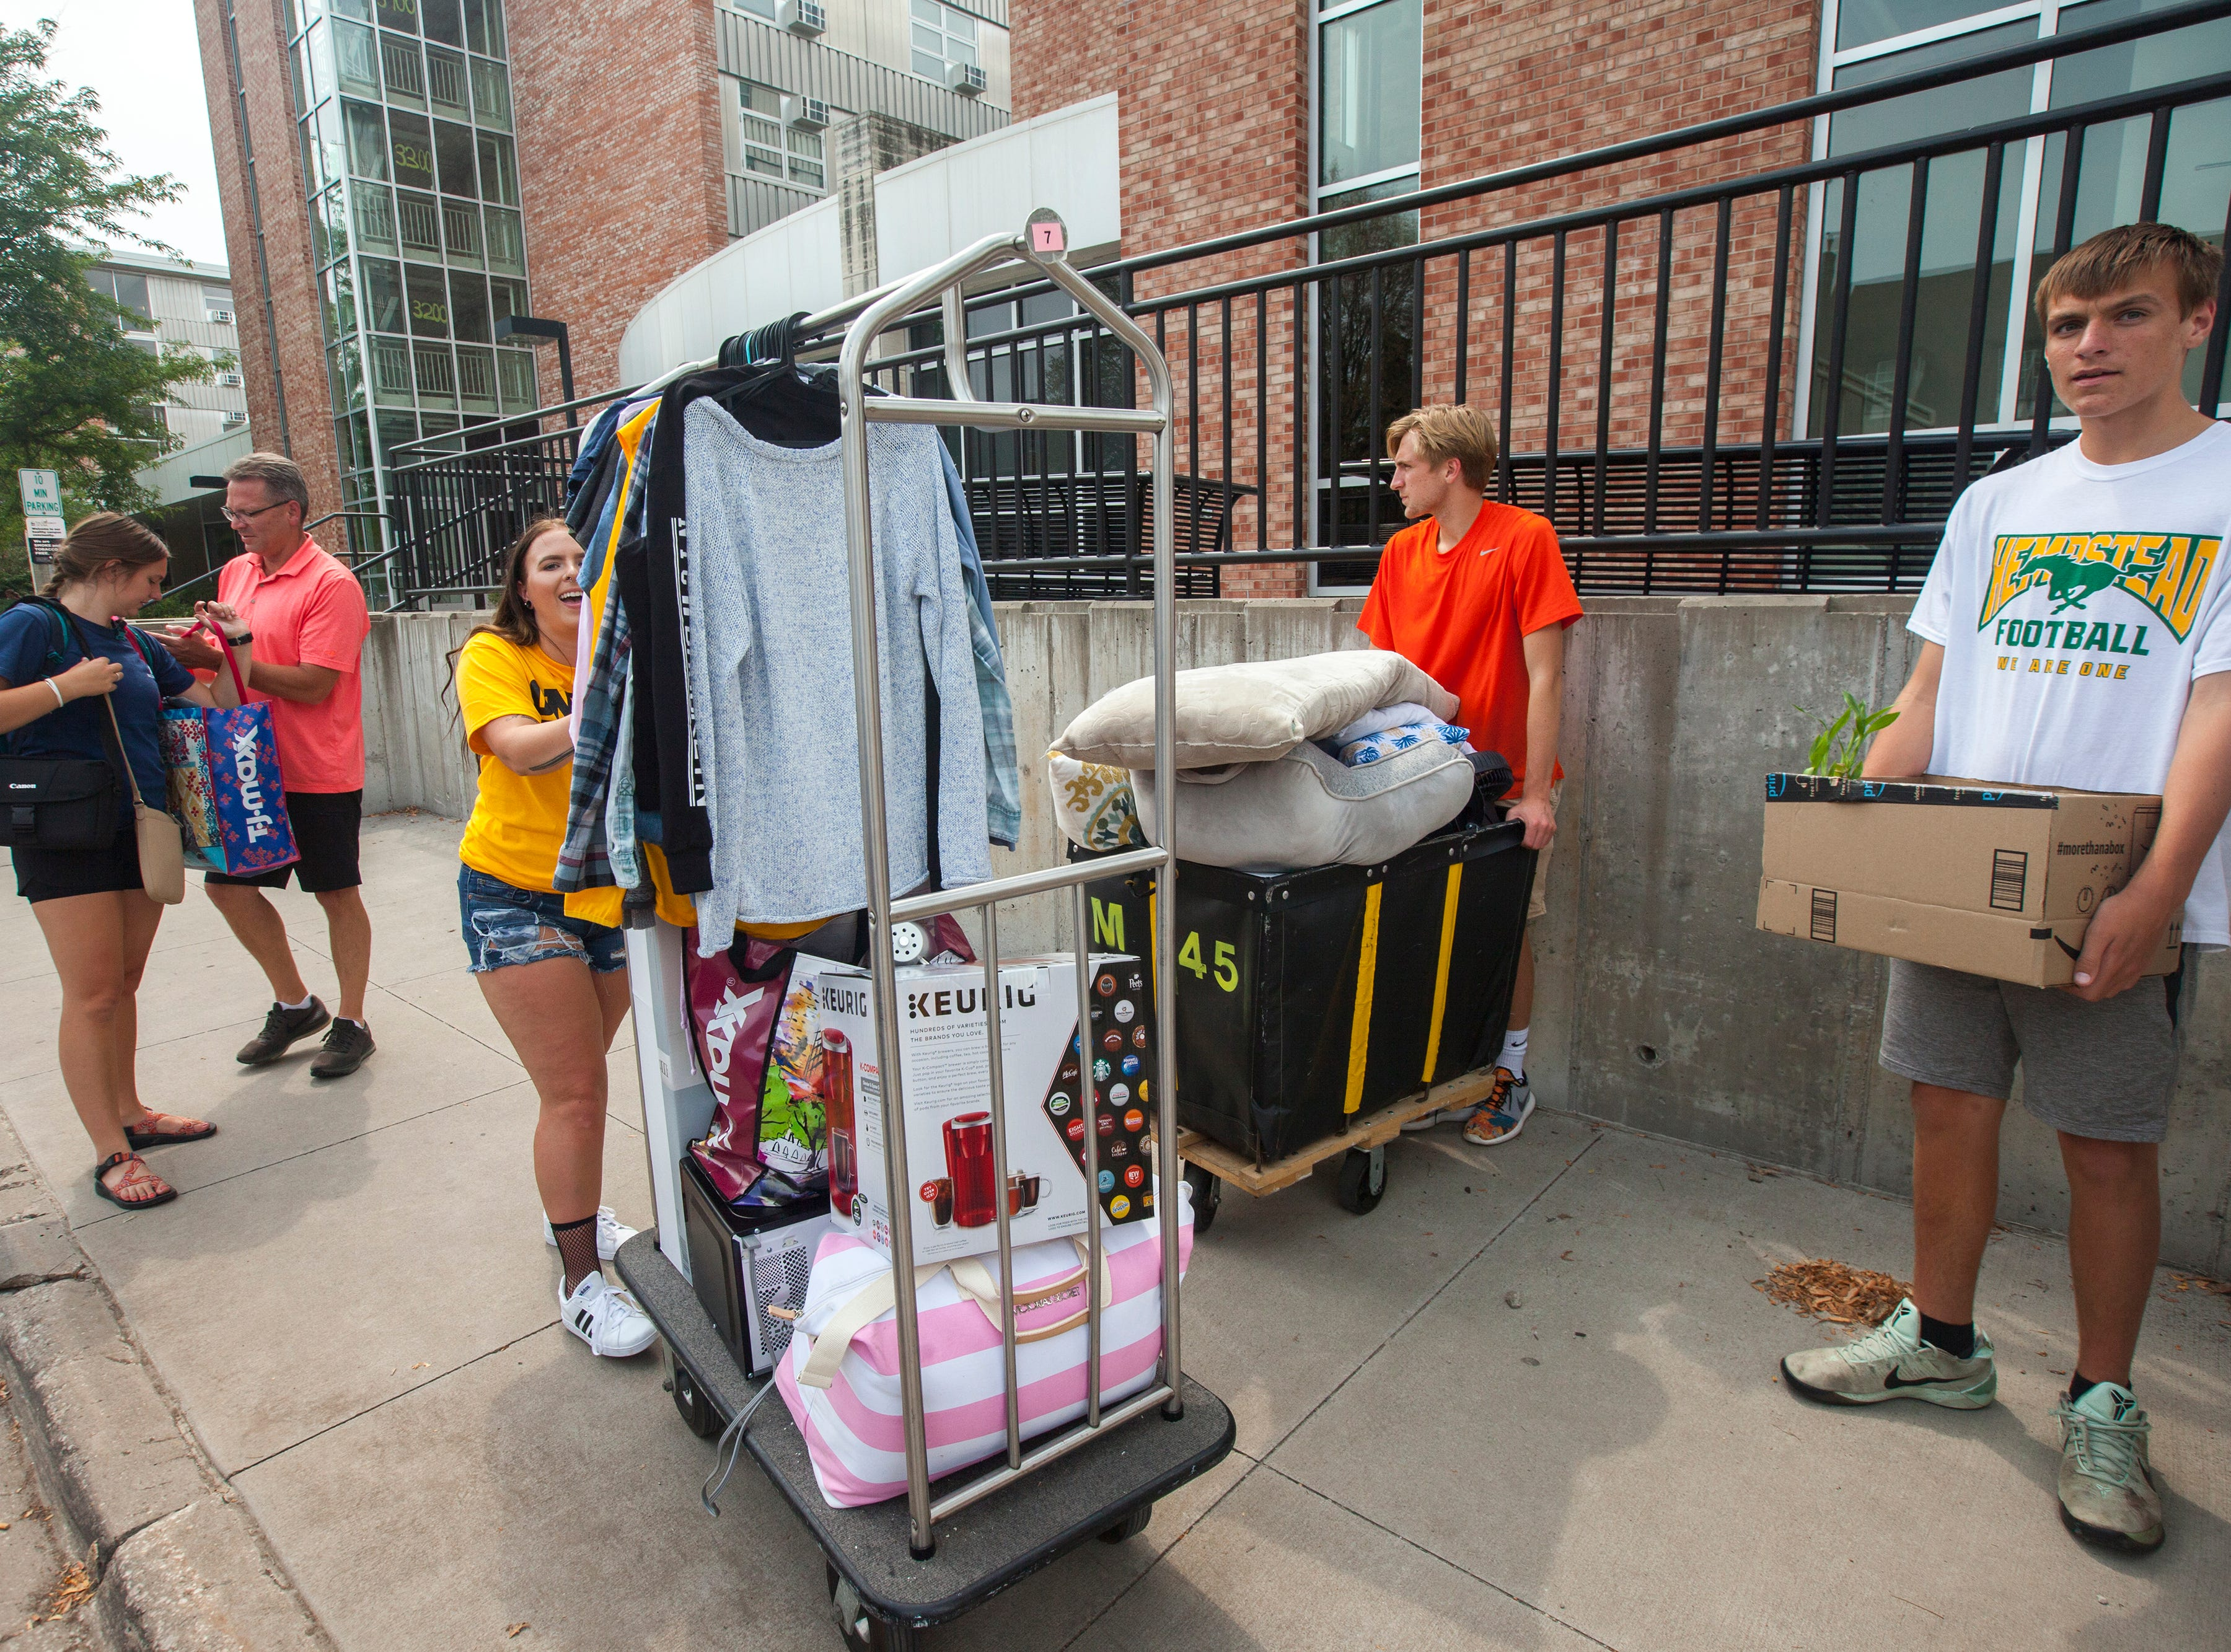 Dara Thompson, of Cedar Rapids, helps Emersen Rheingans, of Dubuque, (far left) during new student move-in on Tuesday, Aug. 14, 2018, on the University of Iowa campus in Iowa City. Rheingans is the oldest child of Jack and Jen Rheingans and had her help from her two brothers, Colten and Jack.